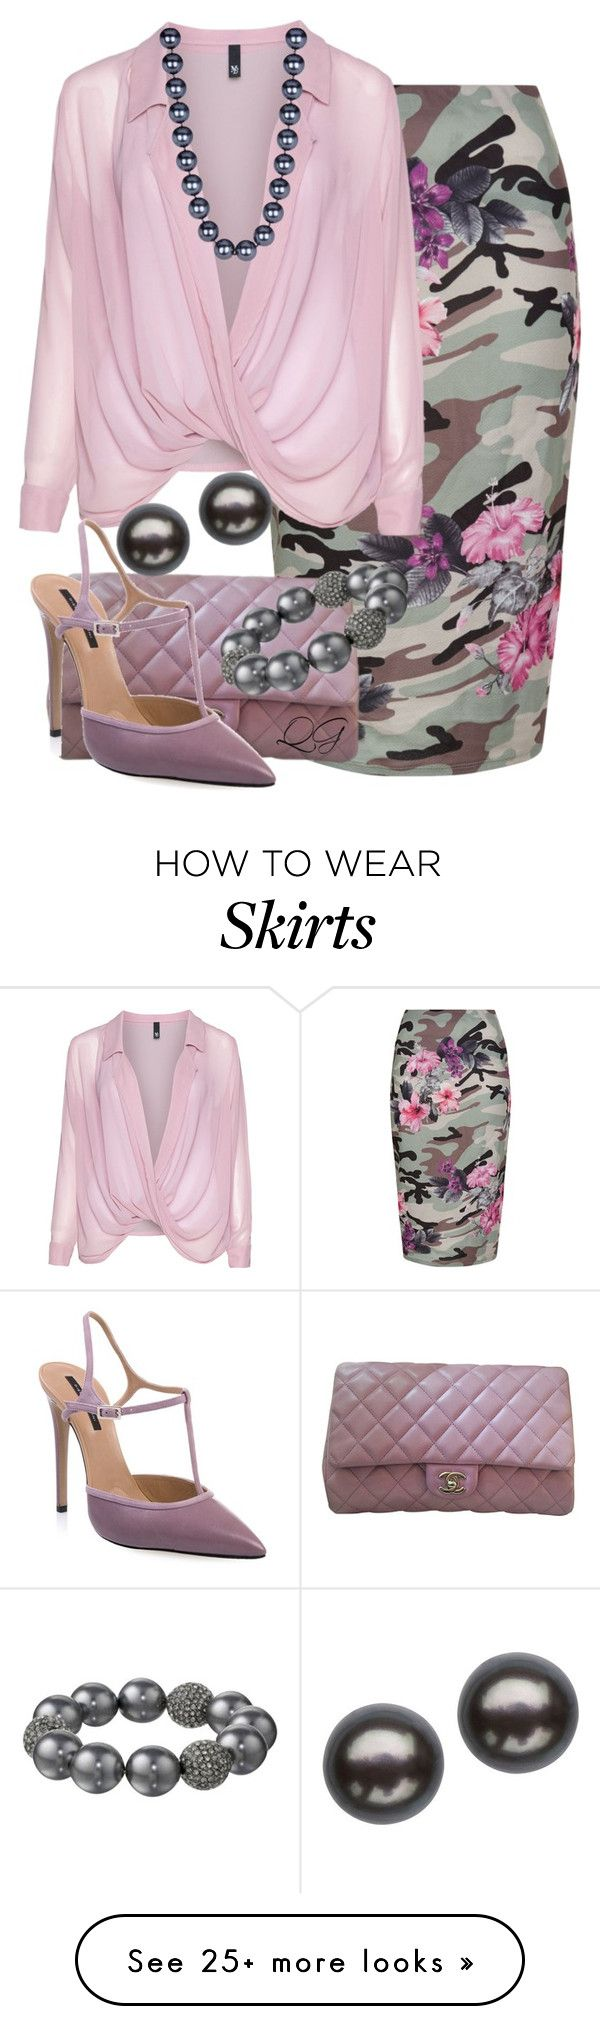 """~~ PENCIL SKIRT ~~"" by queenofthegypsies on Polyvore featuring New Look, Manon Baptiste, Chanel, Diego Dolcini, Kenneth Jay Lane and Honora"